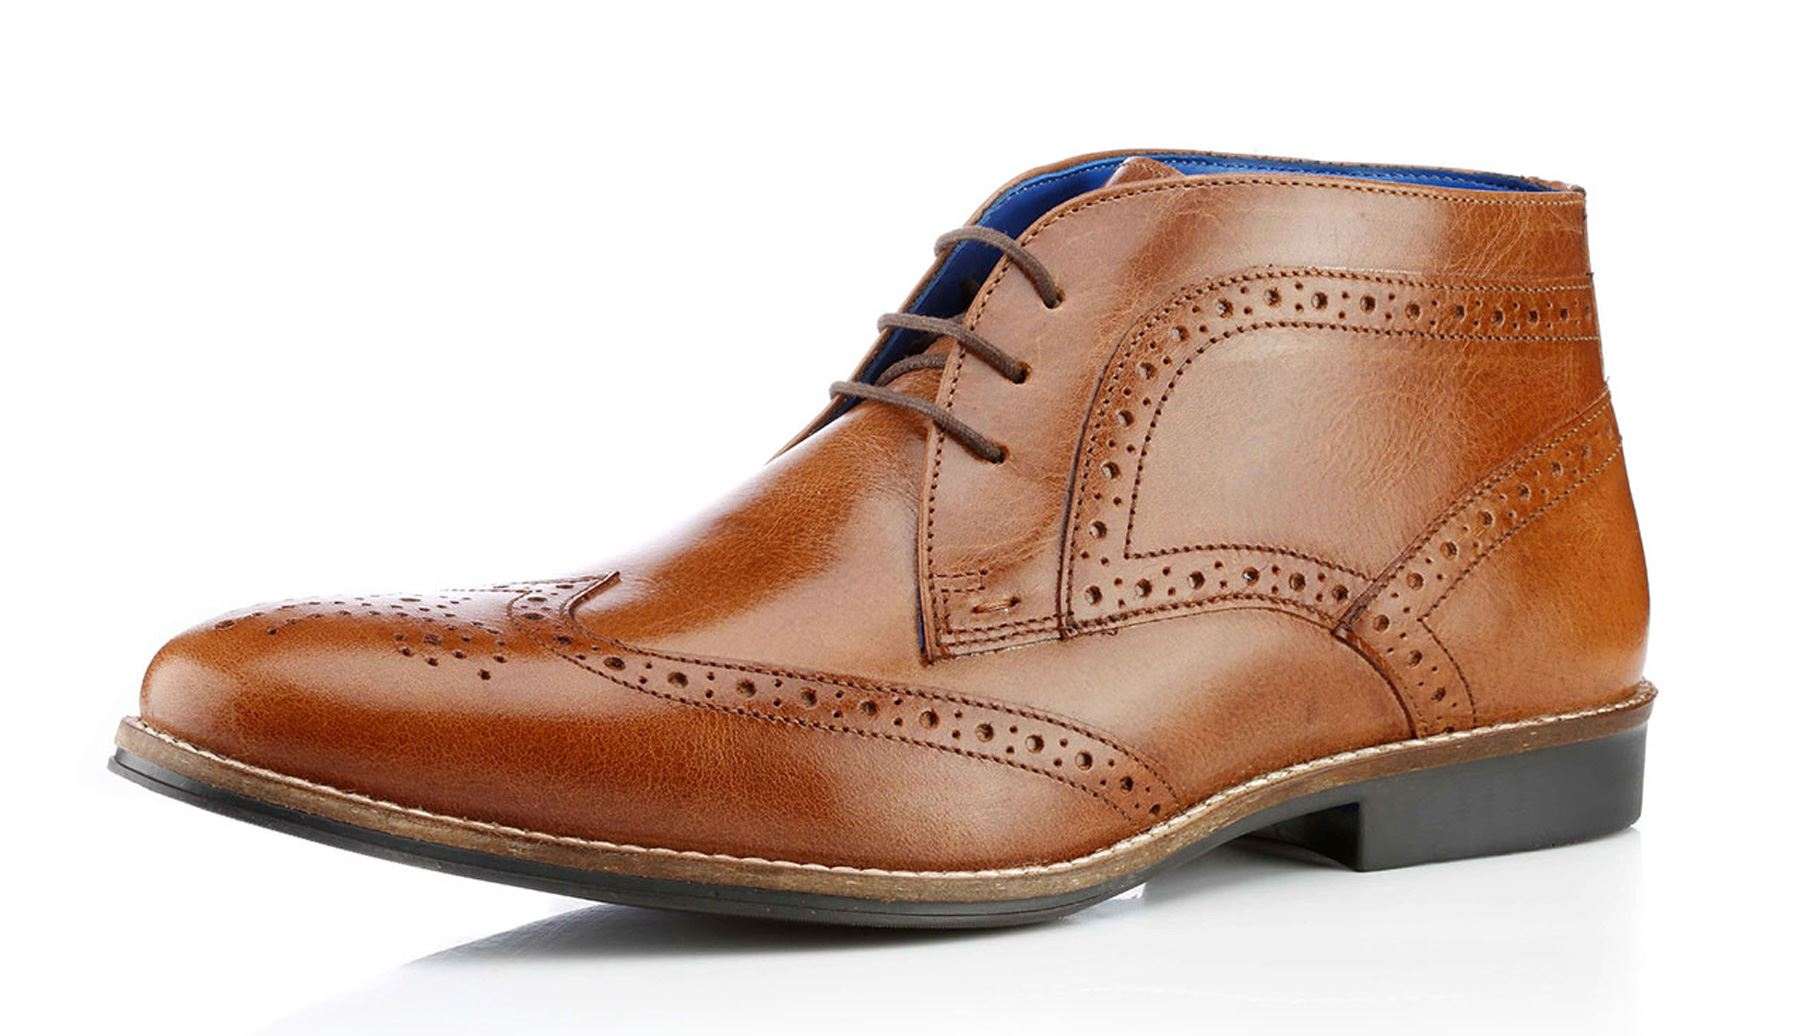 Brogue Boots Tan Leather - Tan Redtape NrC4e5Bd